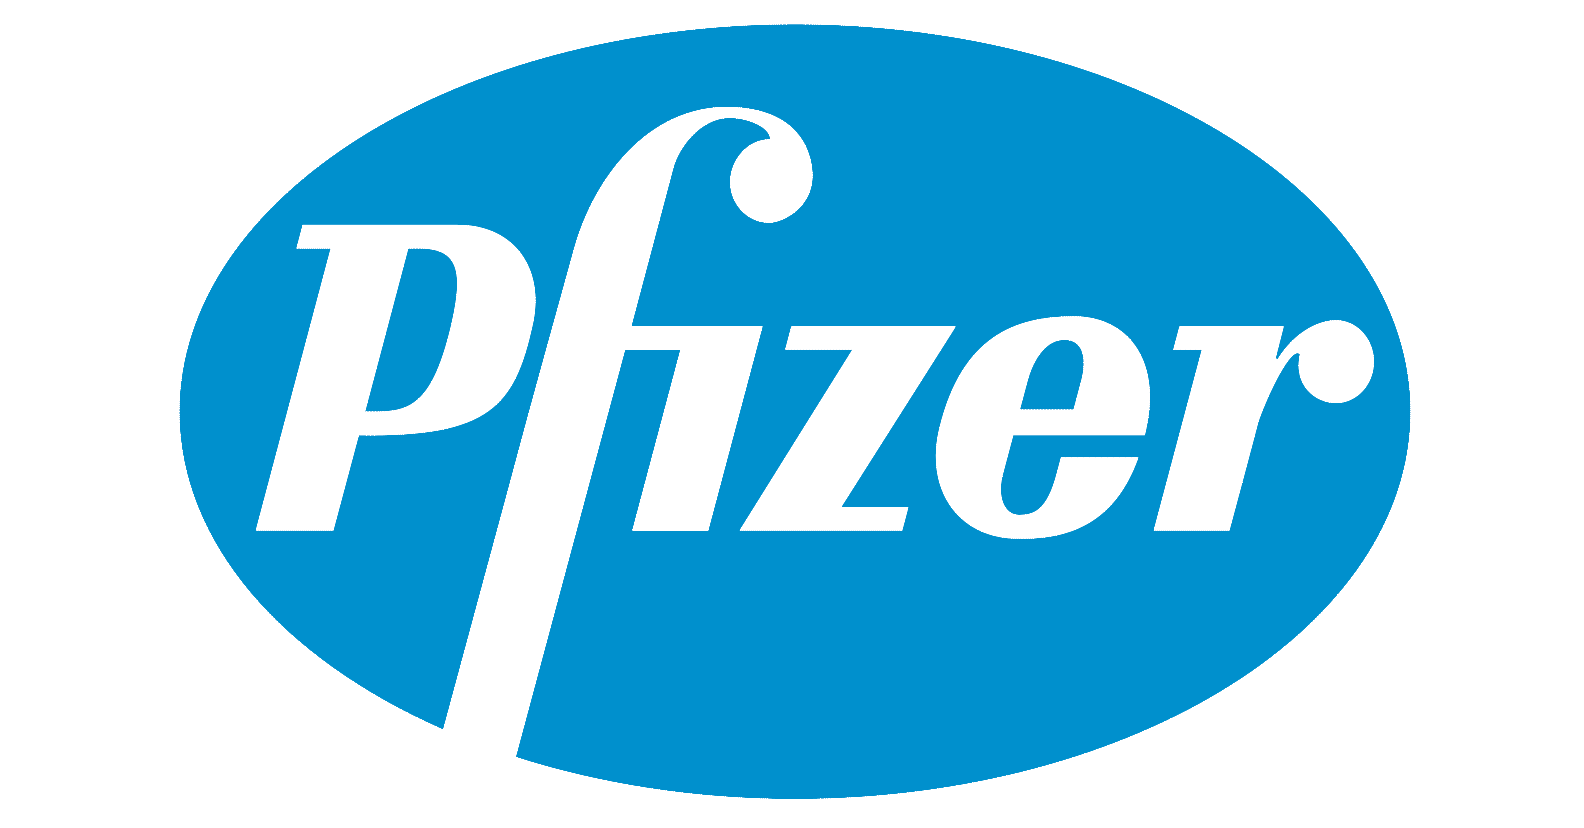 4phizer.png